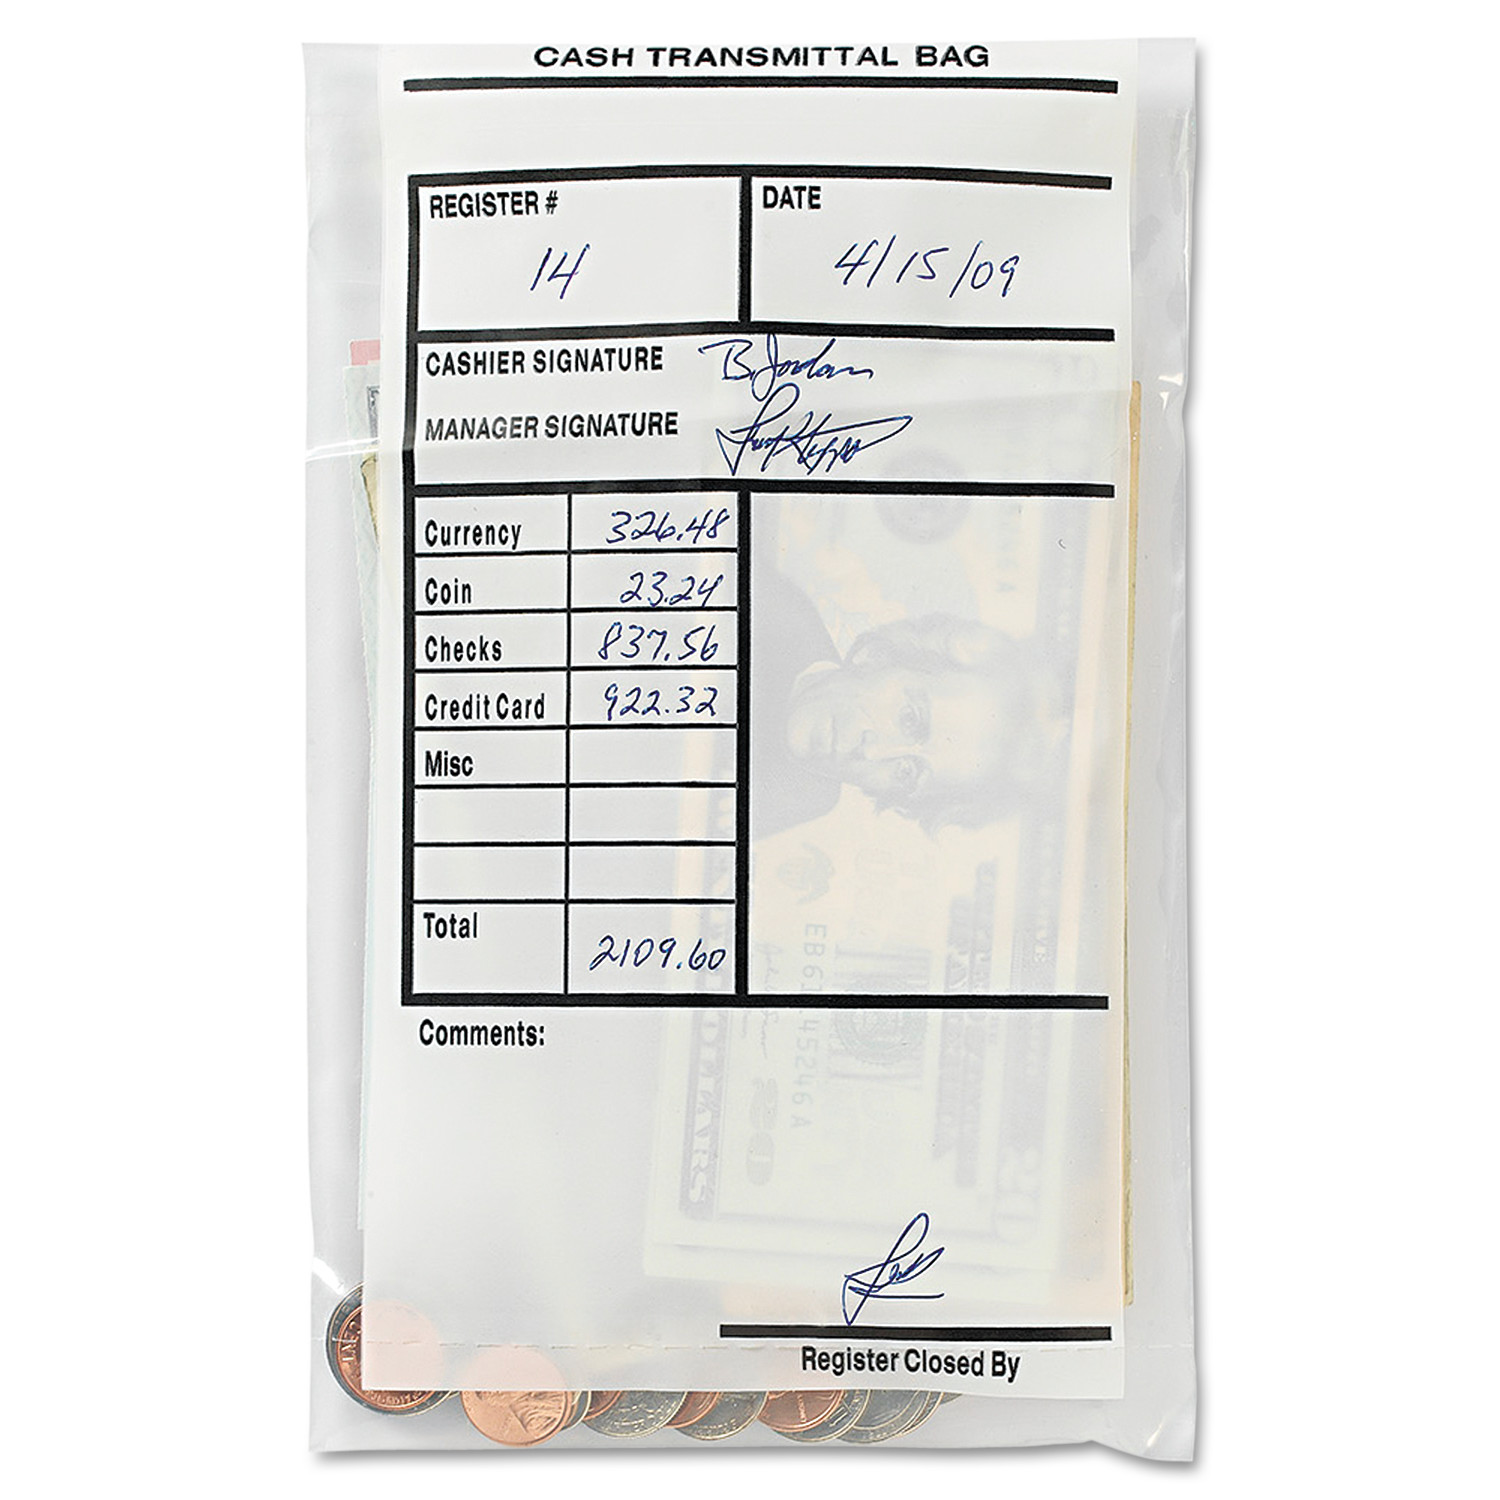 MMF Industries Cash Transmittal Bags, Self-Sealing, 6 x 9, Clear, 500 Bags/Box -MMF236006920